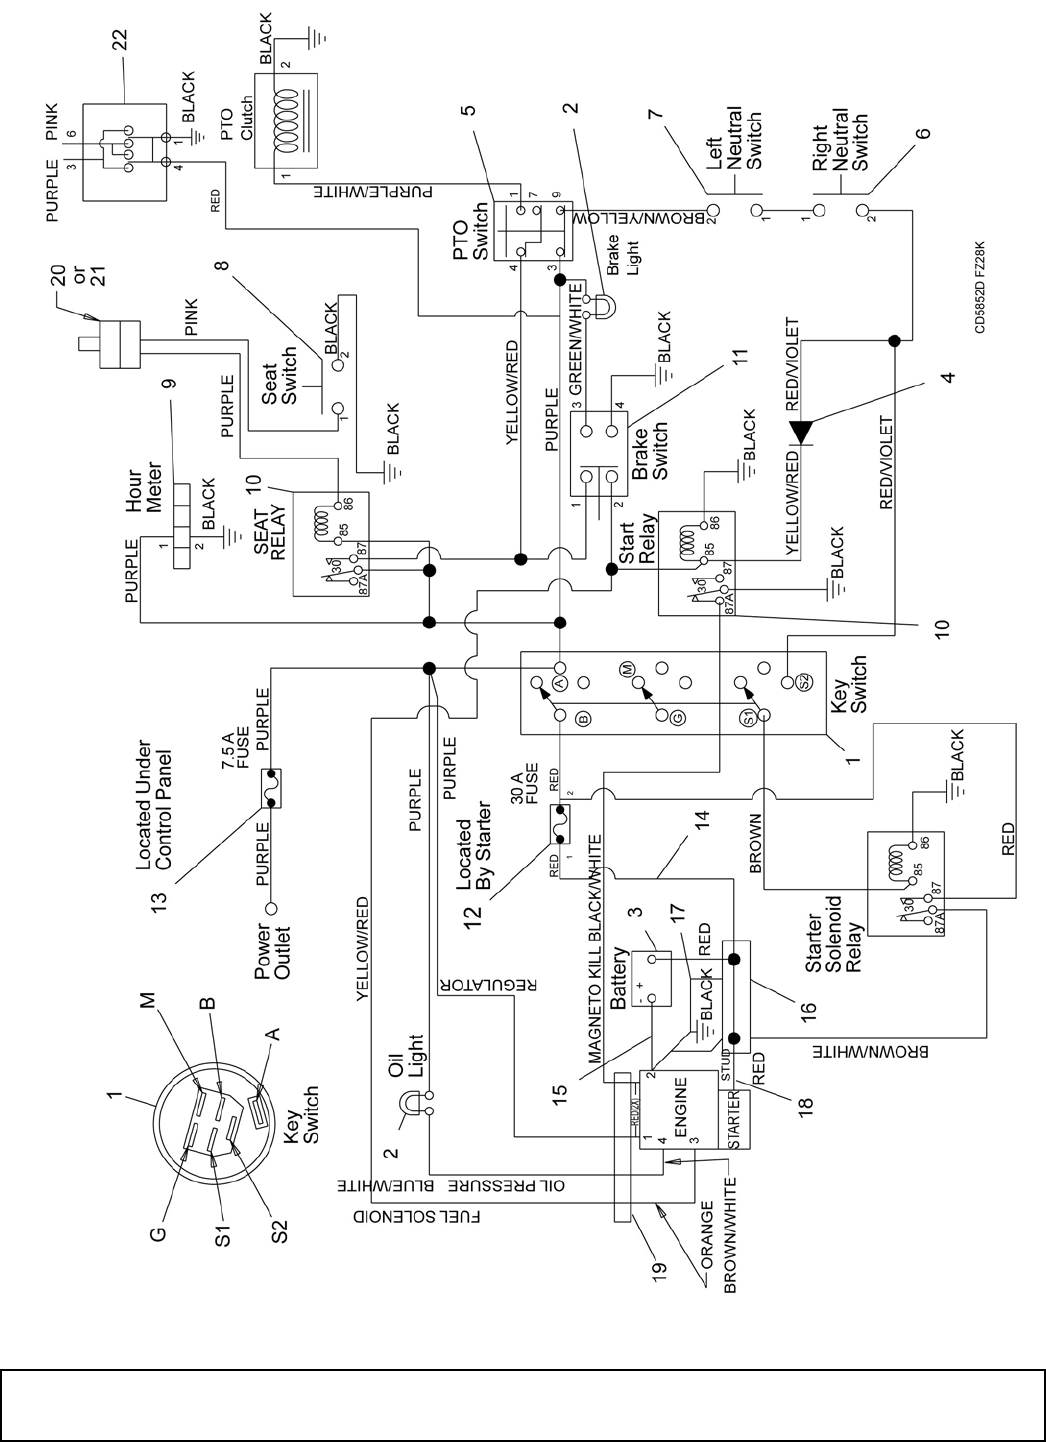 Husqvarna 125b Leaf Blower Fuel Line Diagram furthermore 1007265 Wiring Diagram 1951 F 1 A further Showthread further 256739 Newbie Need Some Help also 6xxa2 Ra Gd. on gravely wiring diagrams